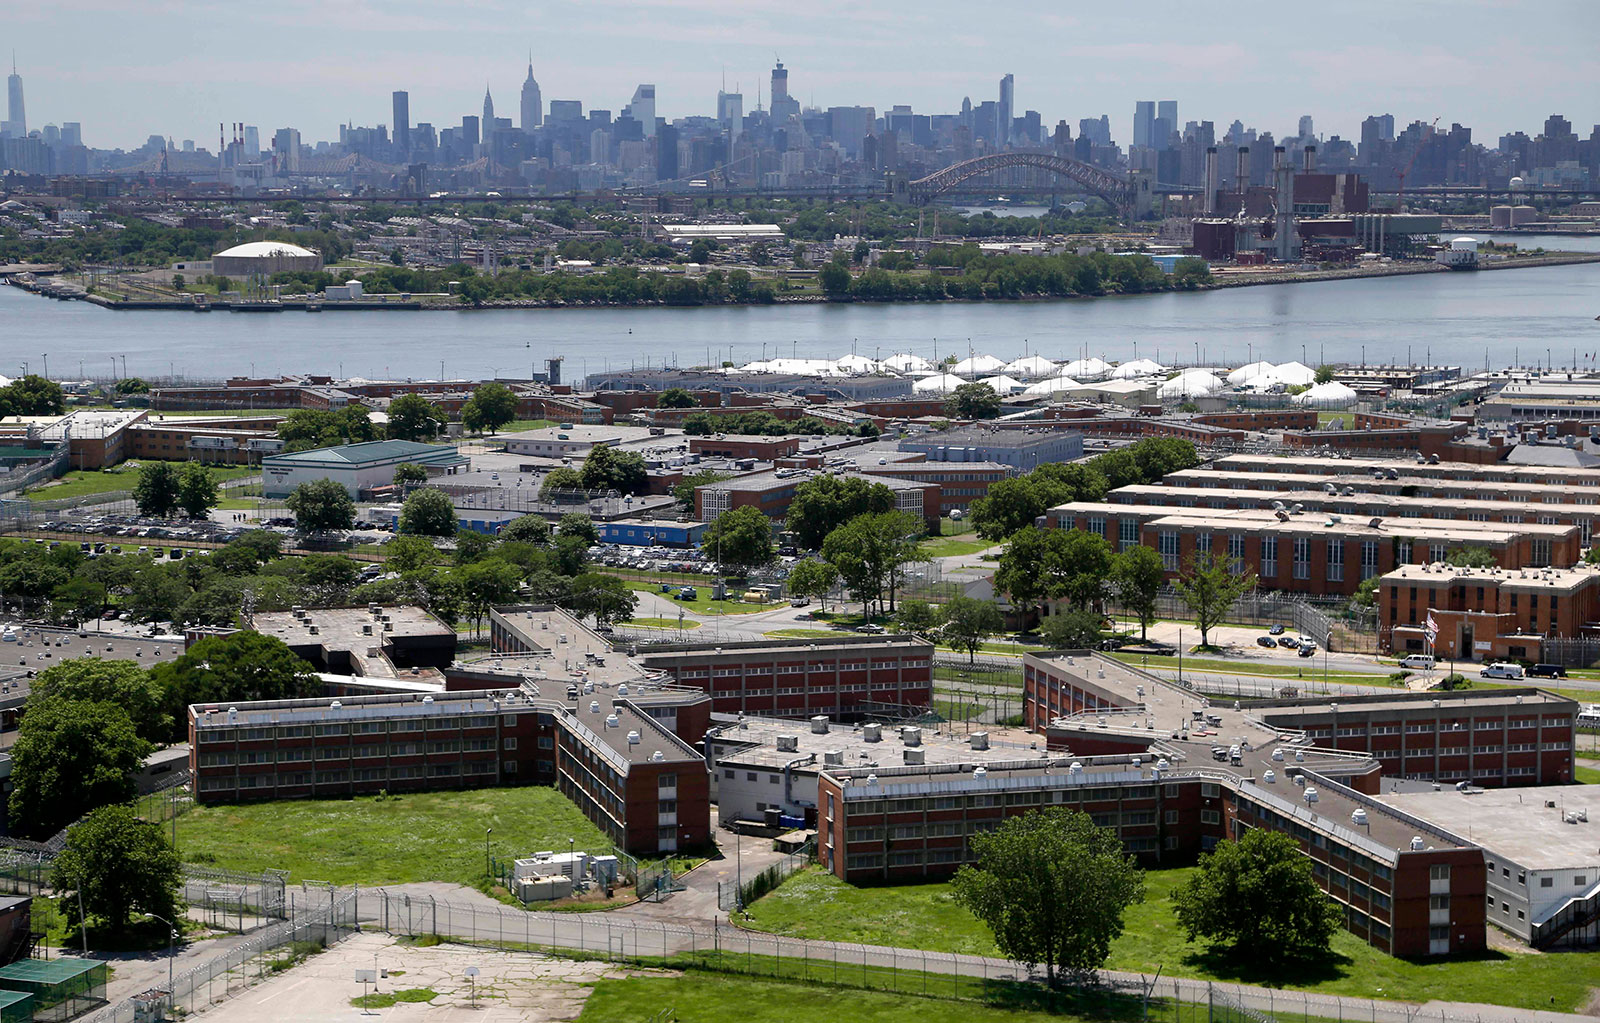 In a June 20, 2014 file photo, the Rikers Island jail complex stands in New York with the Manhattan skyline in the background.